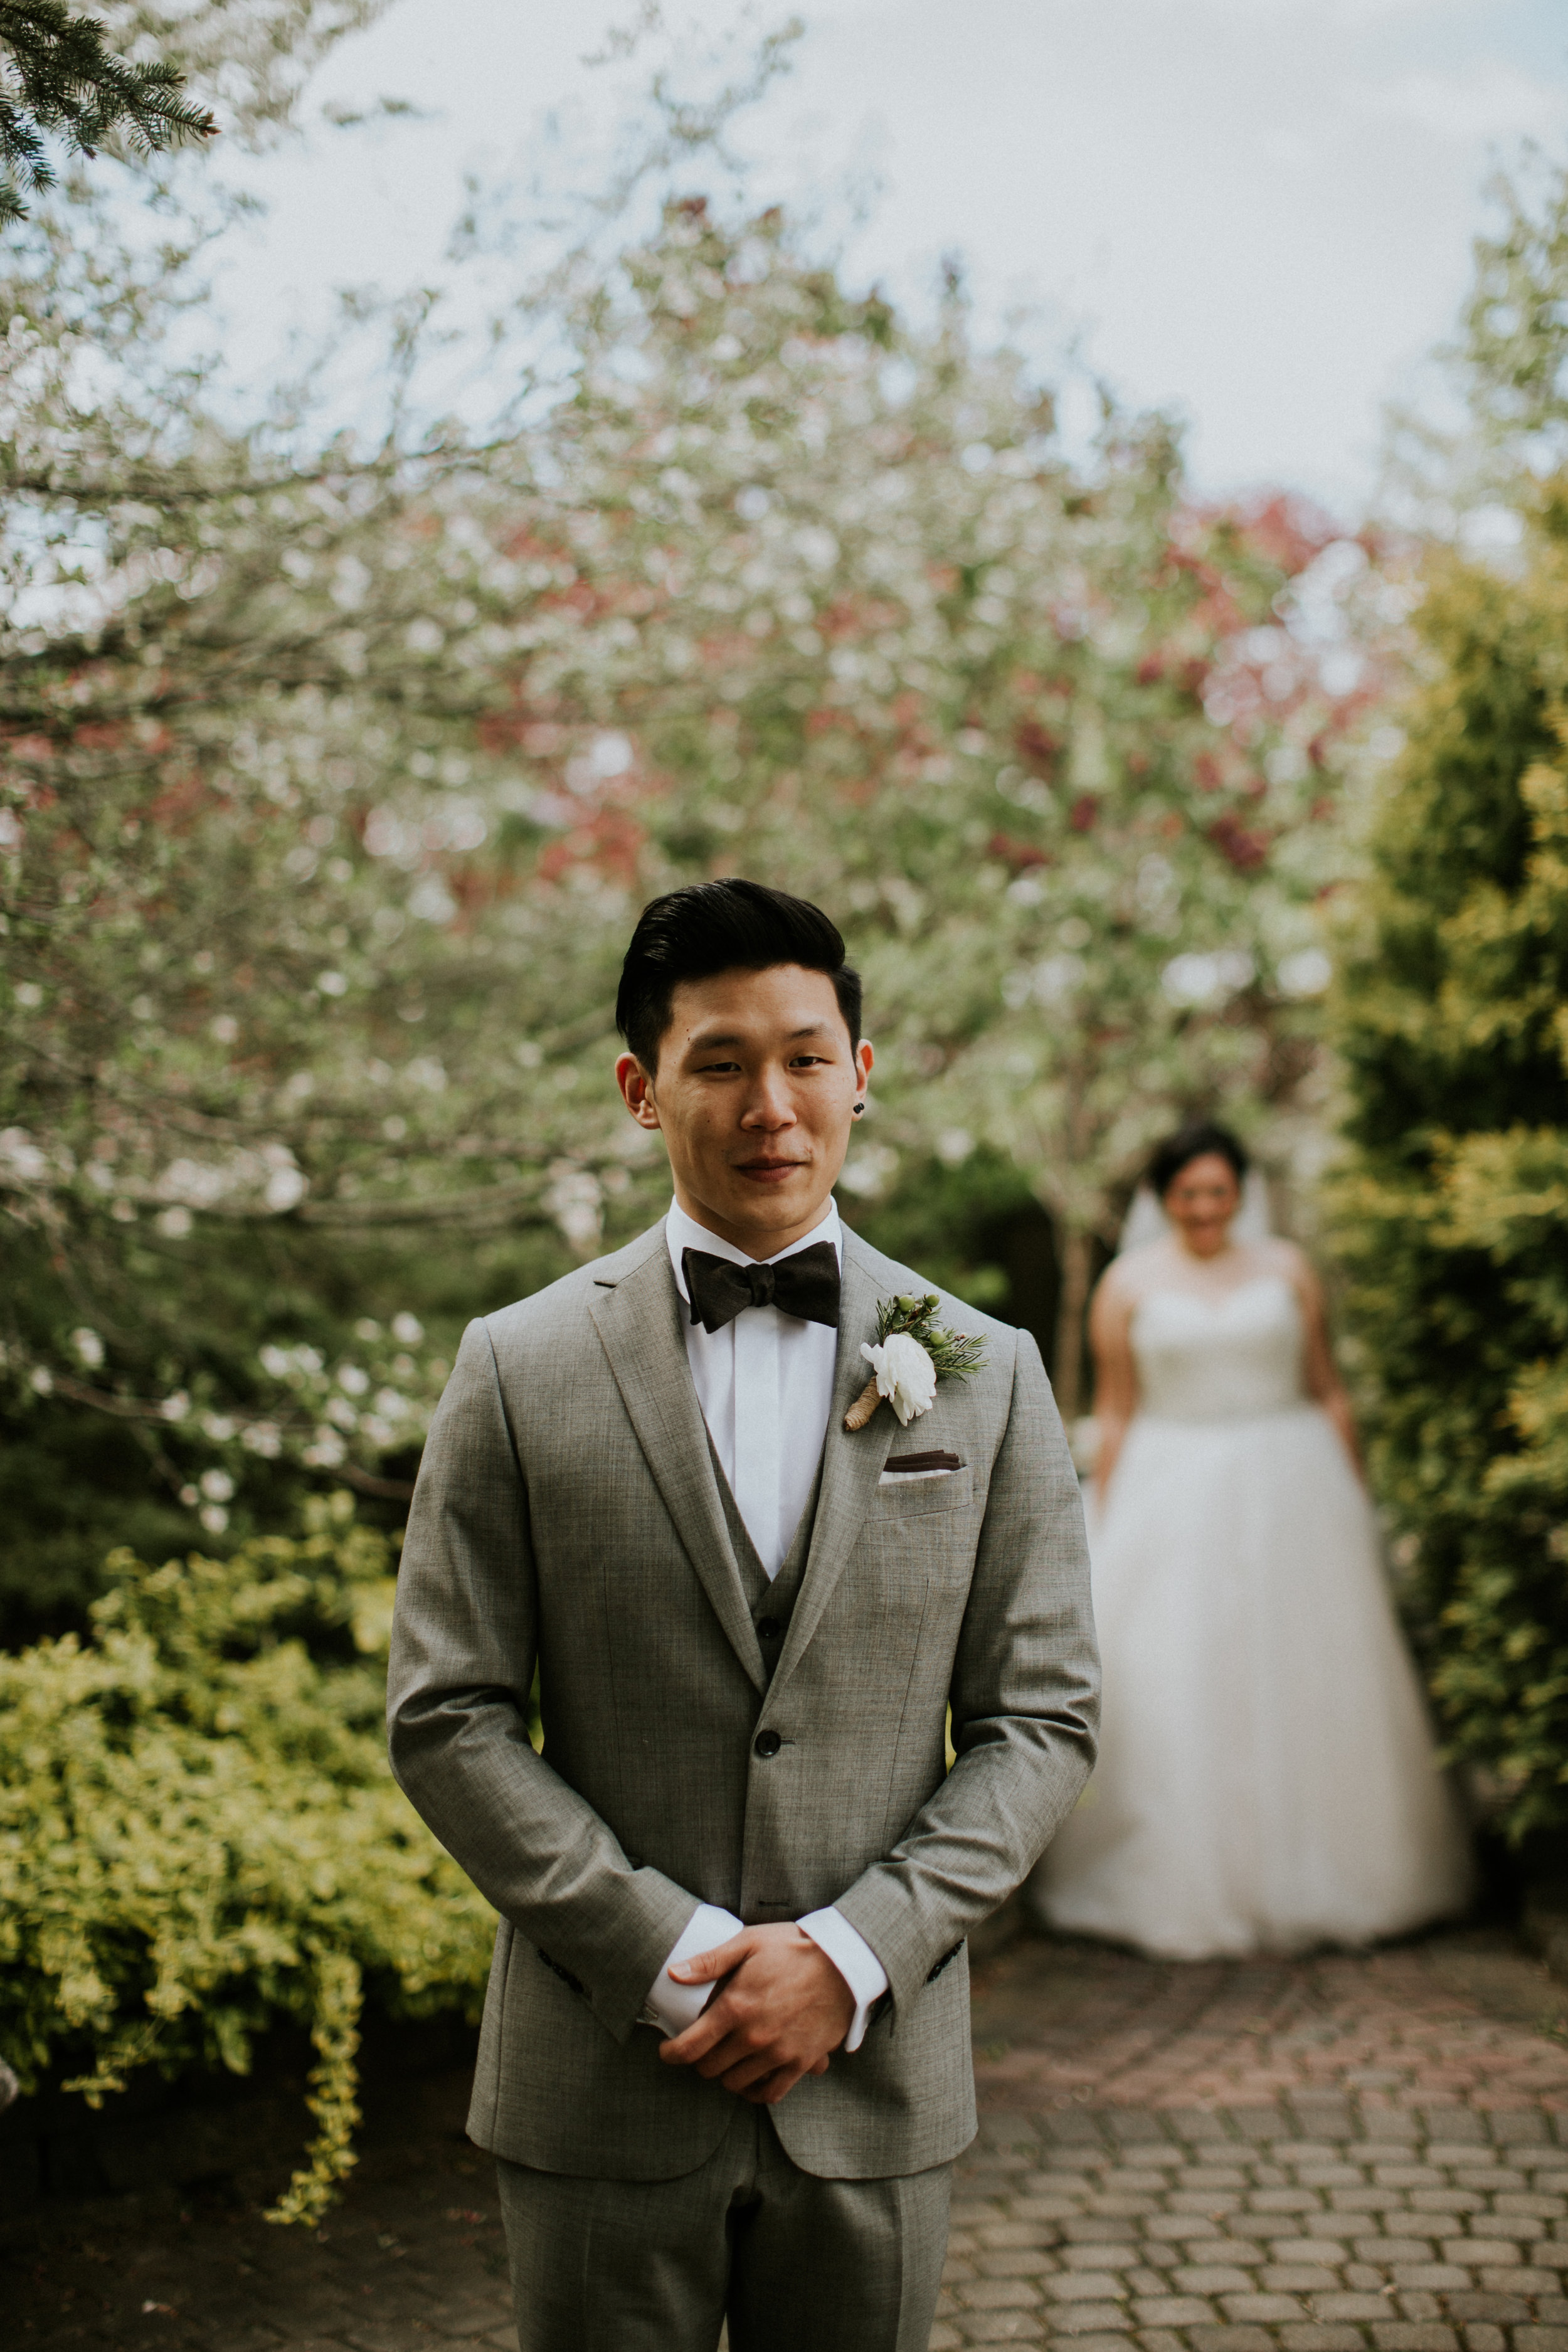 groom anxiously awaiting seeing bride for the first time during outdoor first look